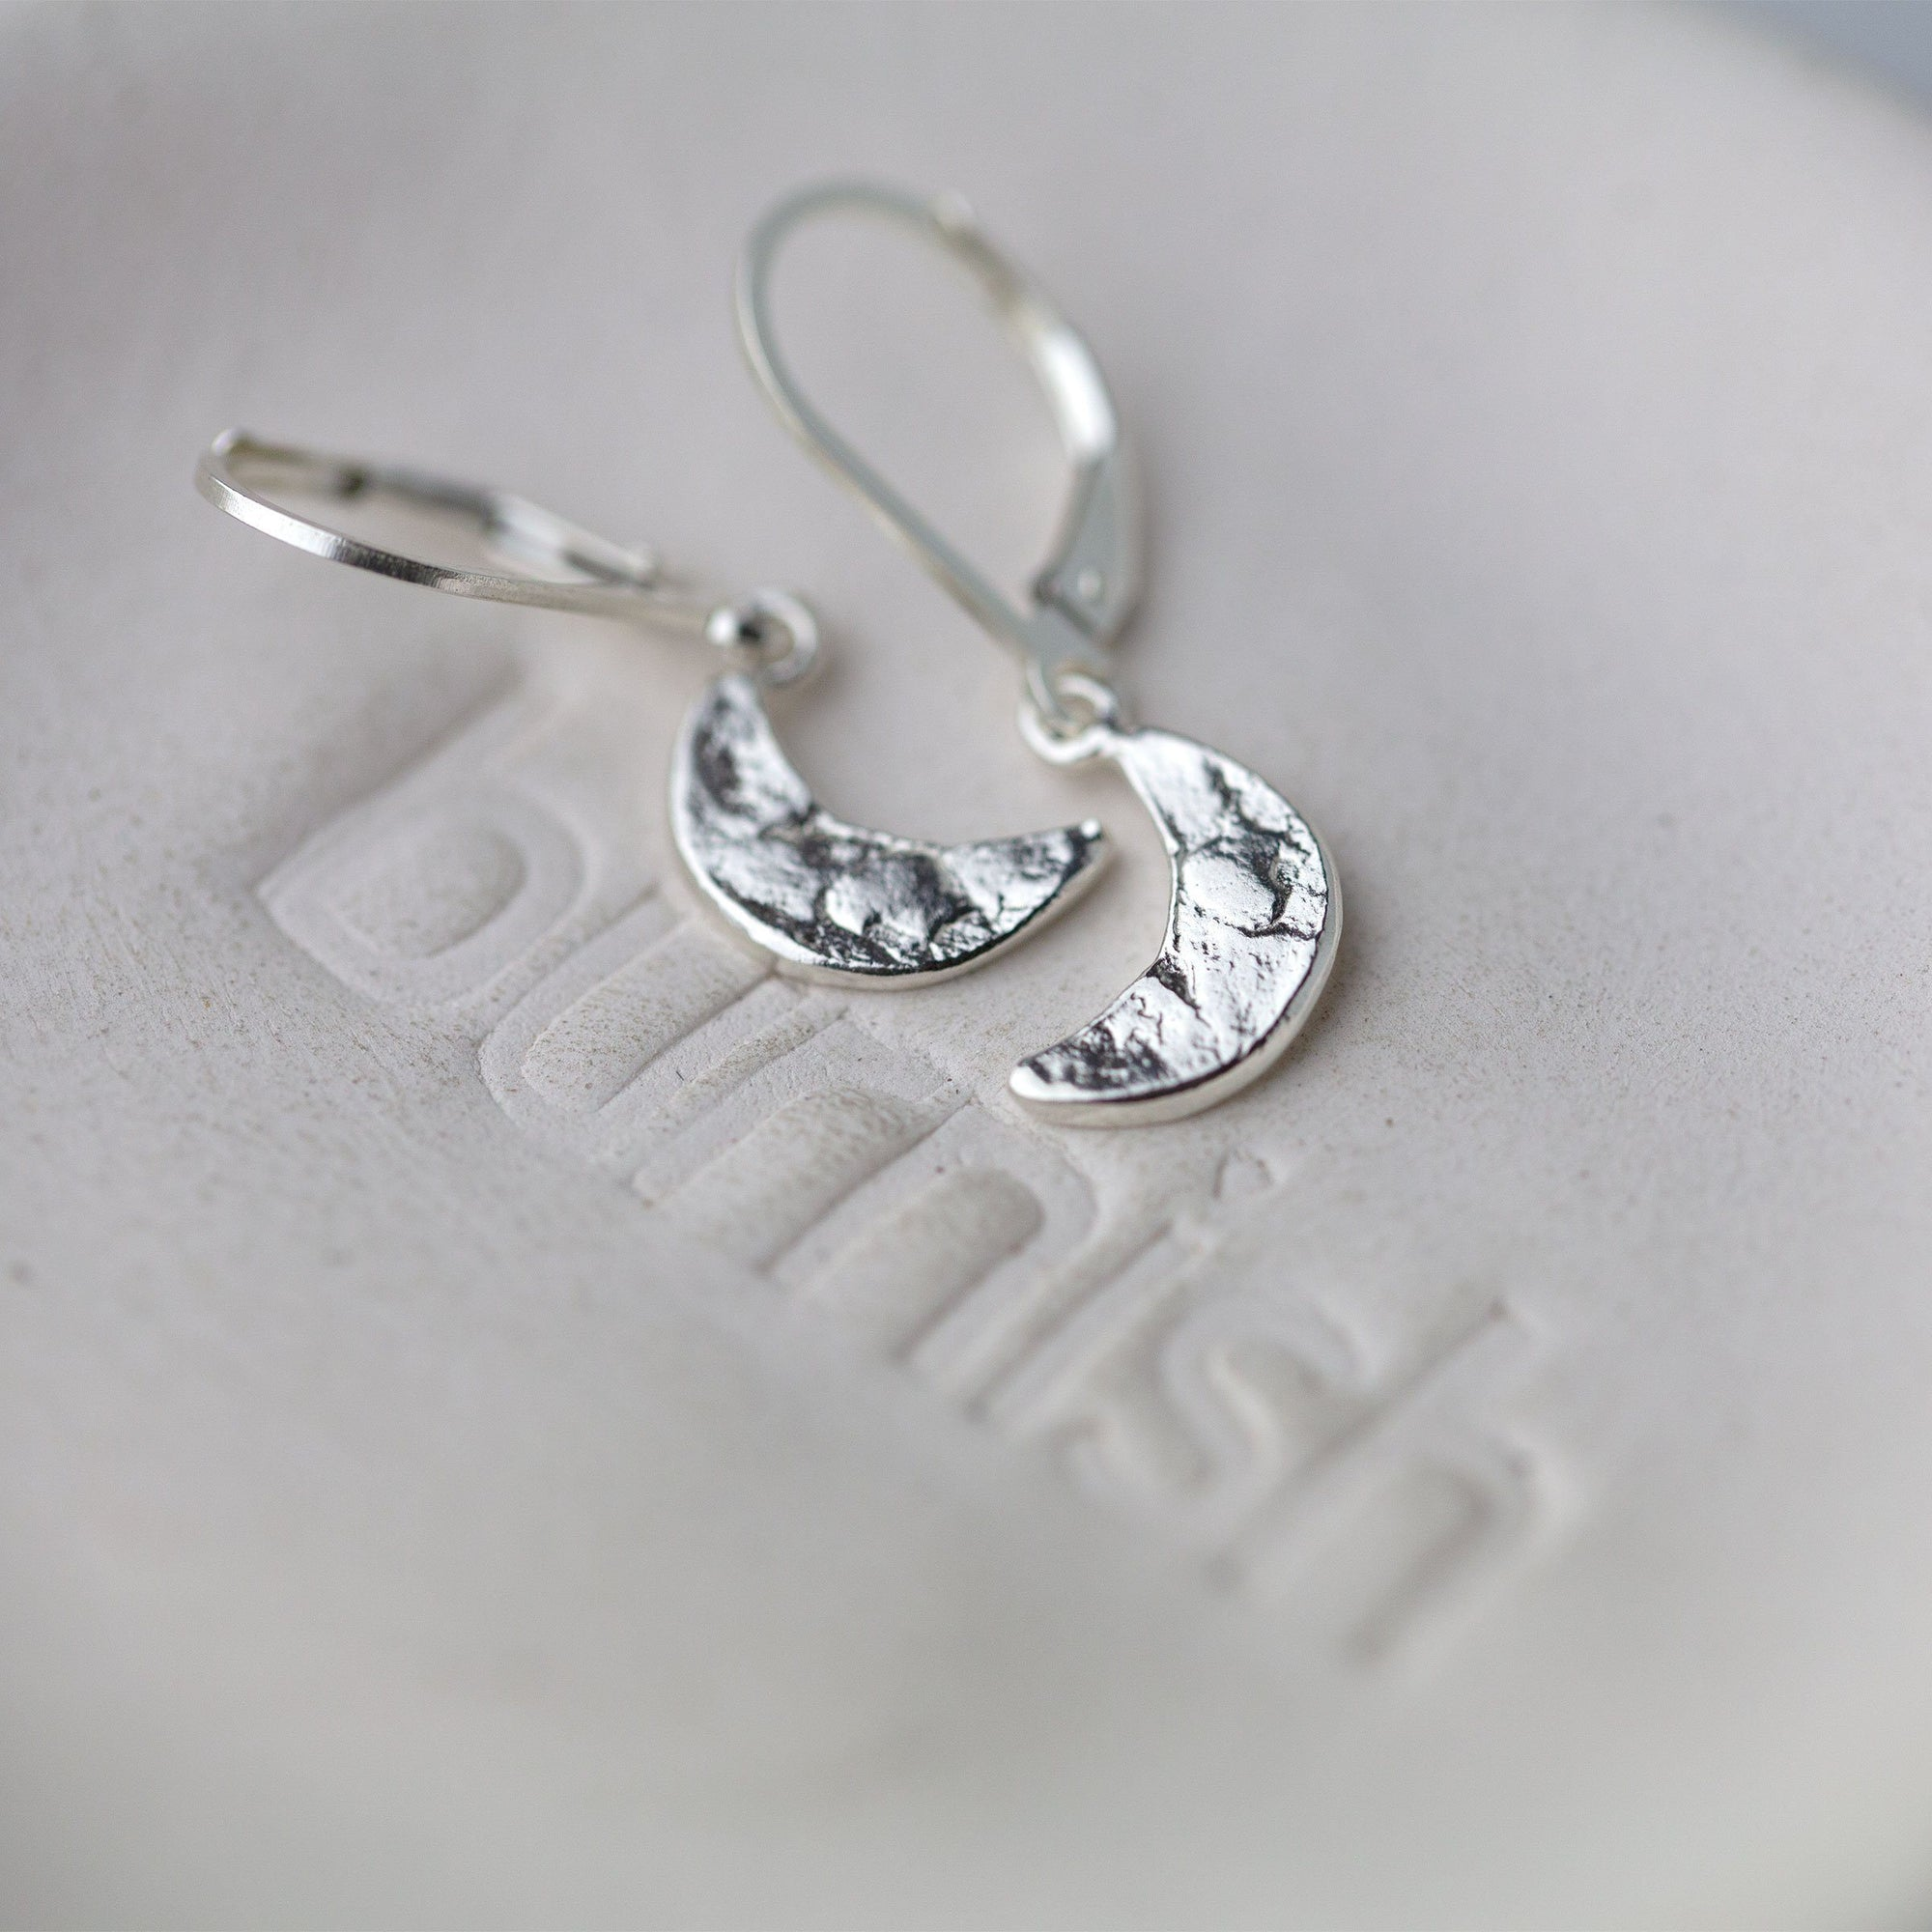 Crescent Moon Lever-back Earrings - Handmade Jewelry by Burnish